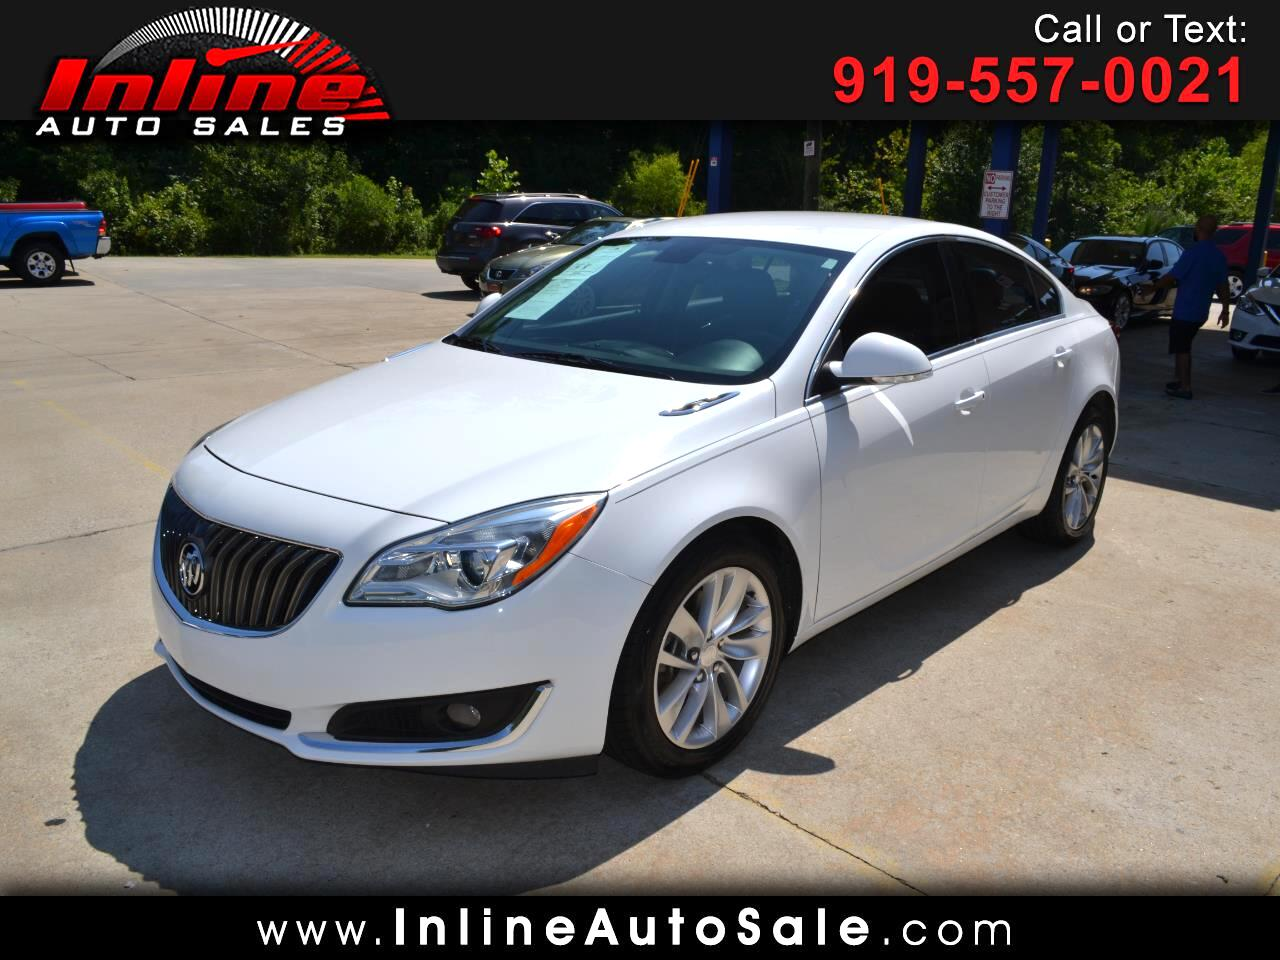 2014 Buick Regal 4dr Sdn Turbo FWD